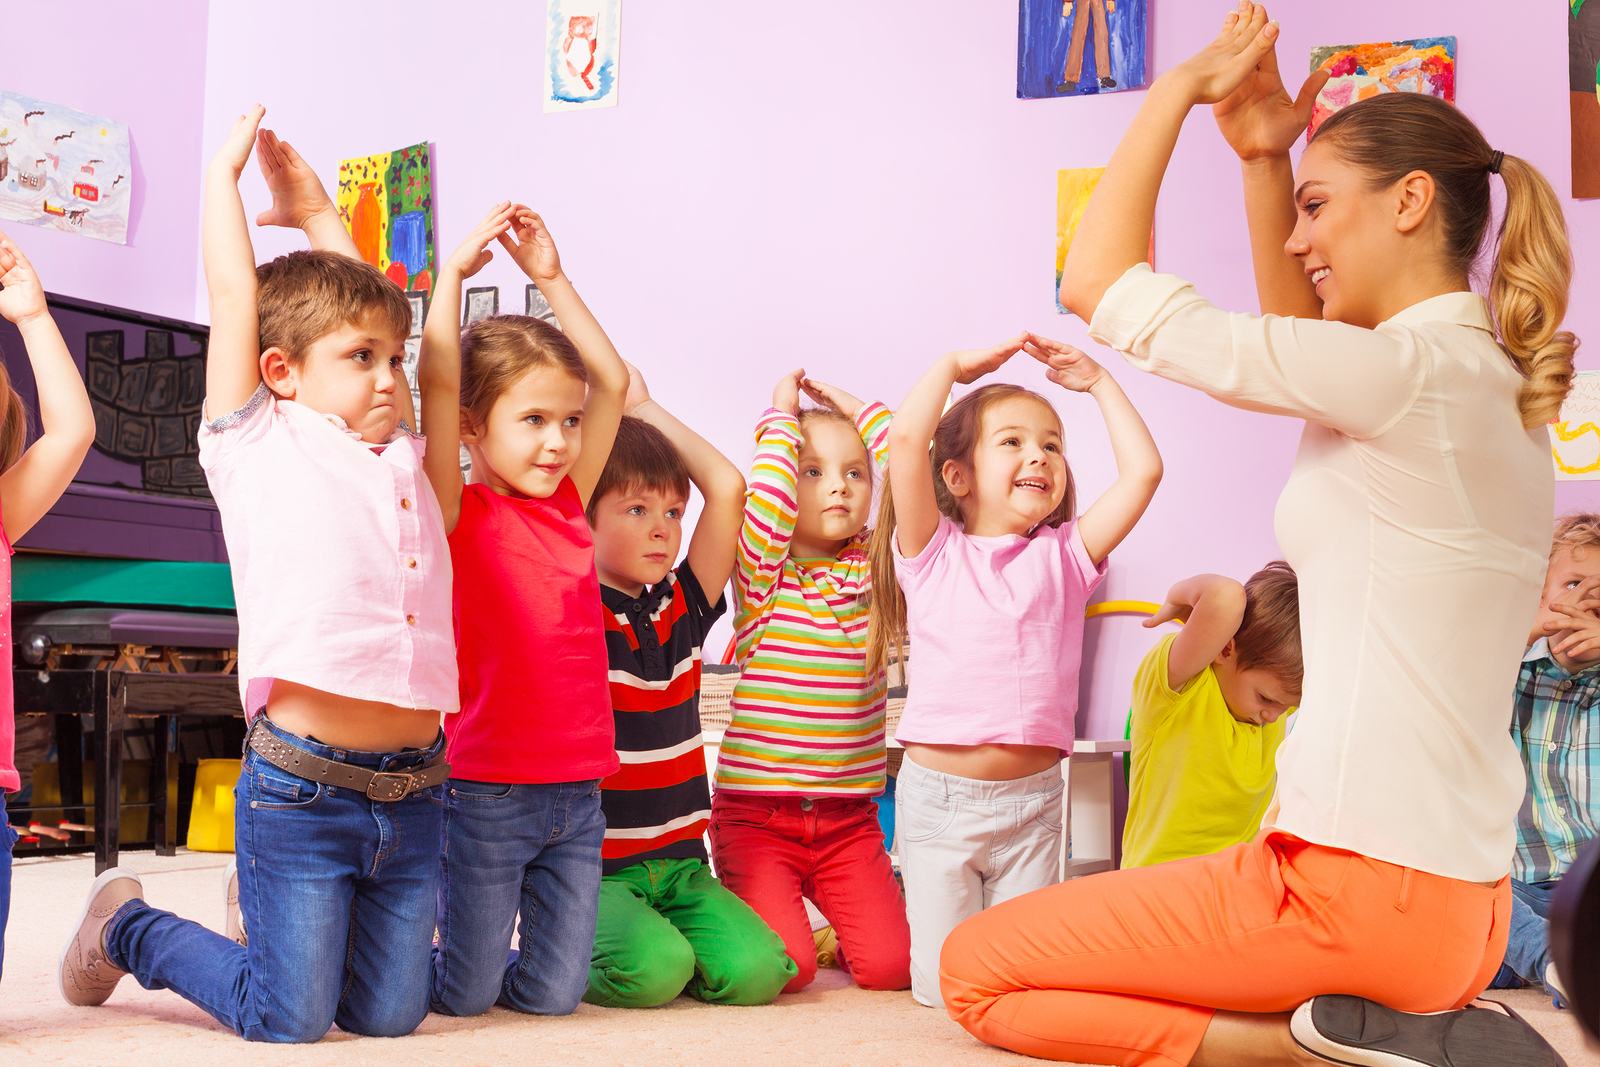 http://hafha.com/wp-content/uploads/2016/04/bigstock-Group-of-kids-repeat-gesture-a-113100242.jpg